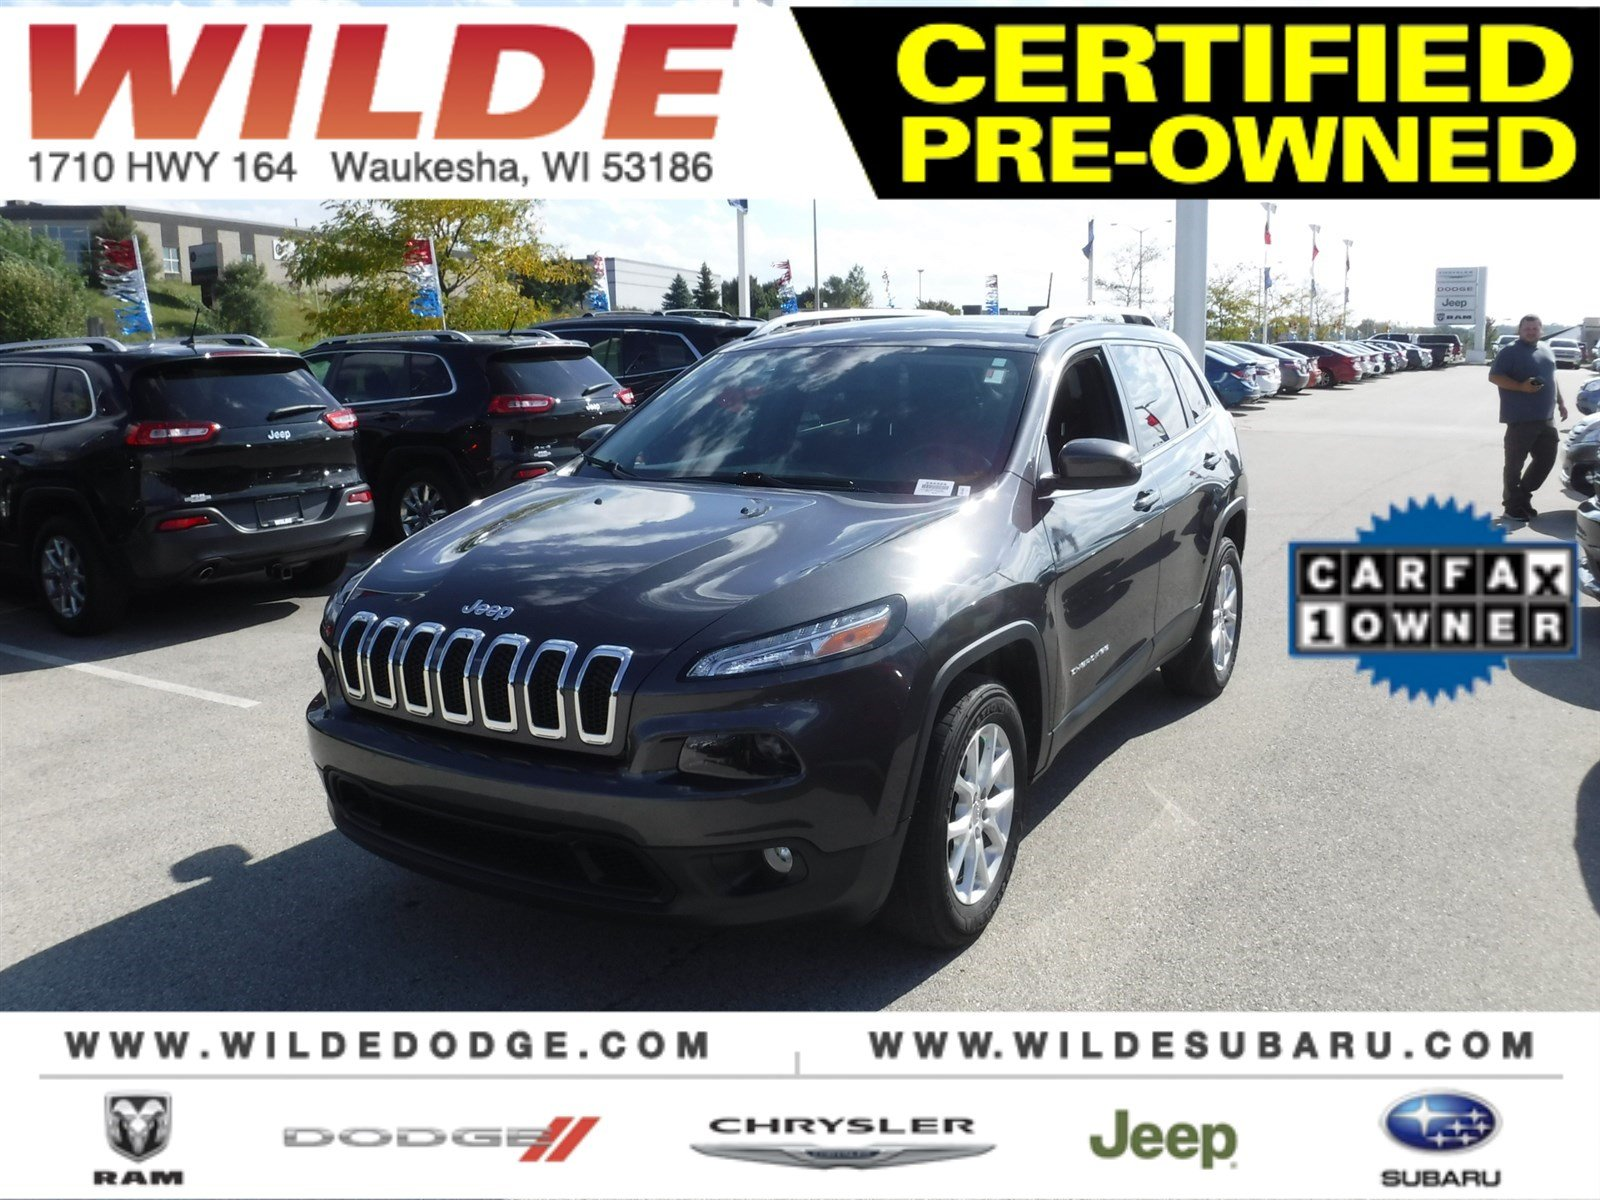 Certified Pre Owned 2016 Jeep Cherokee Latitude SUV in Waukesha